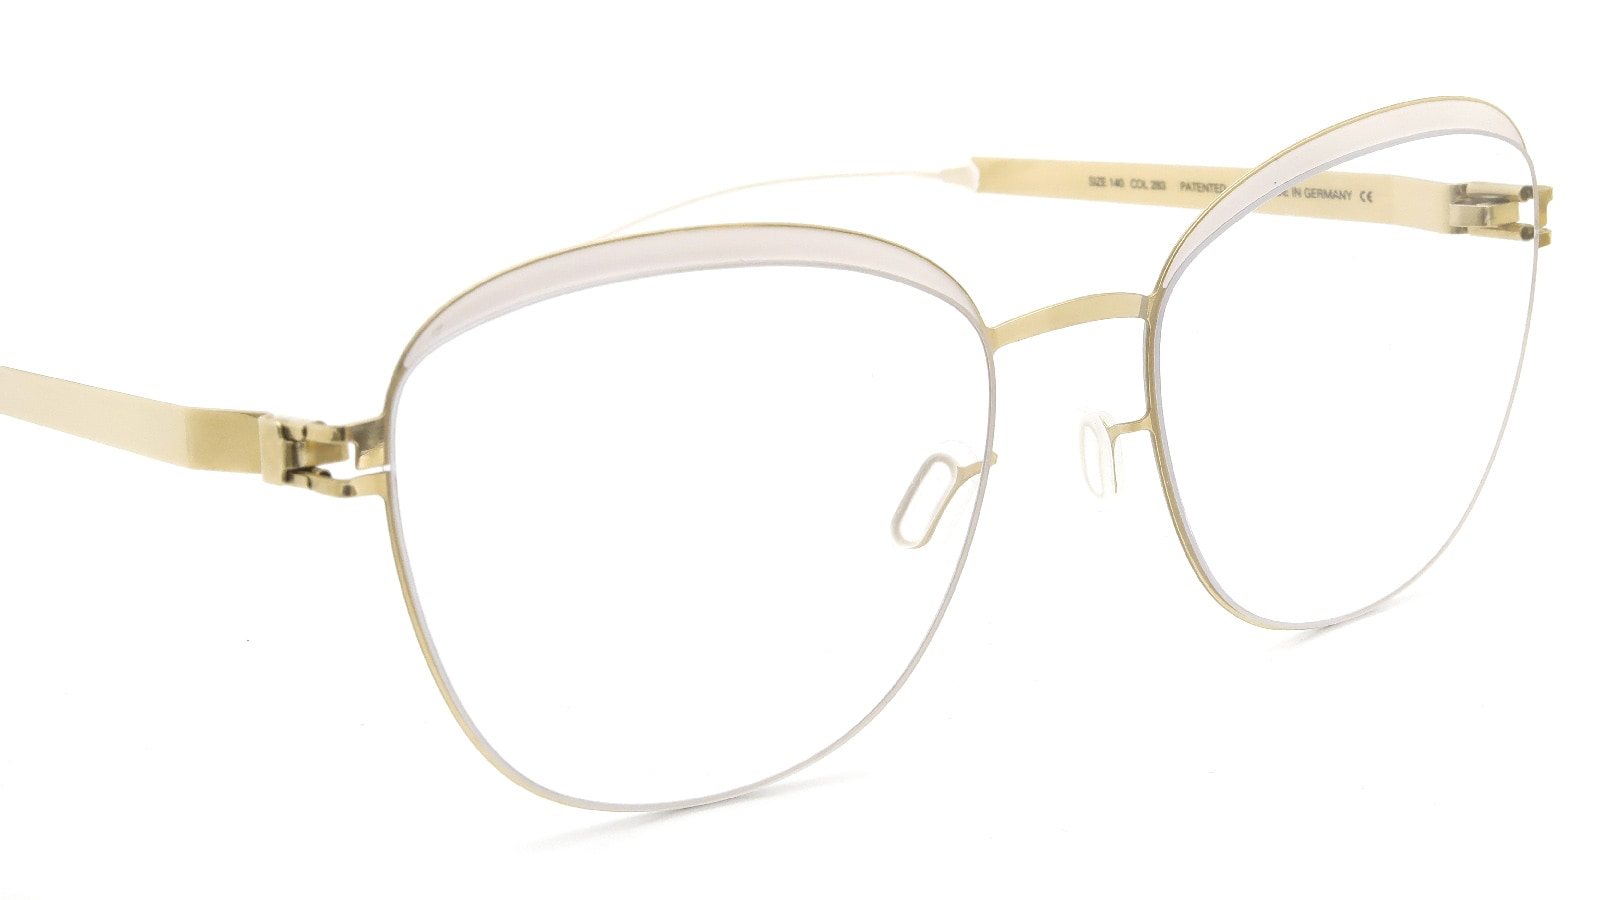 MYKITA [DECADES] CHARLENE 6